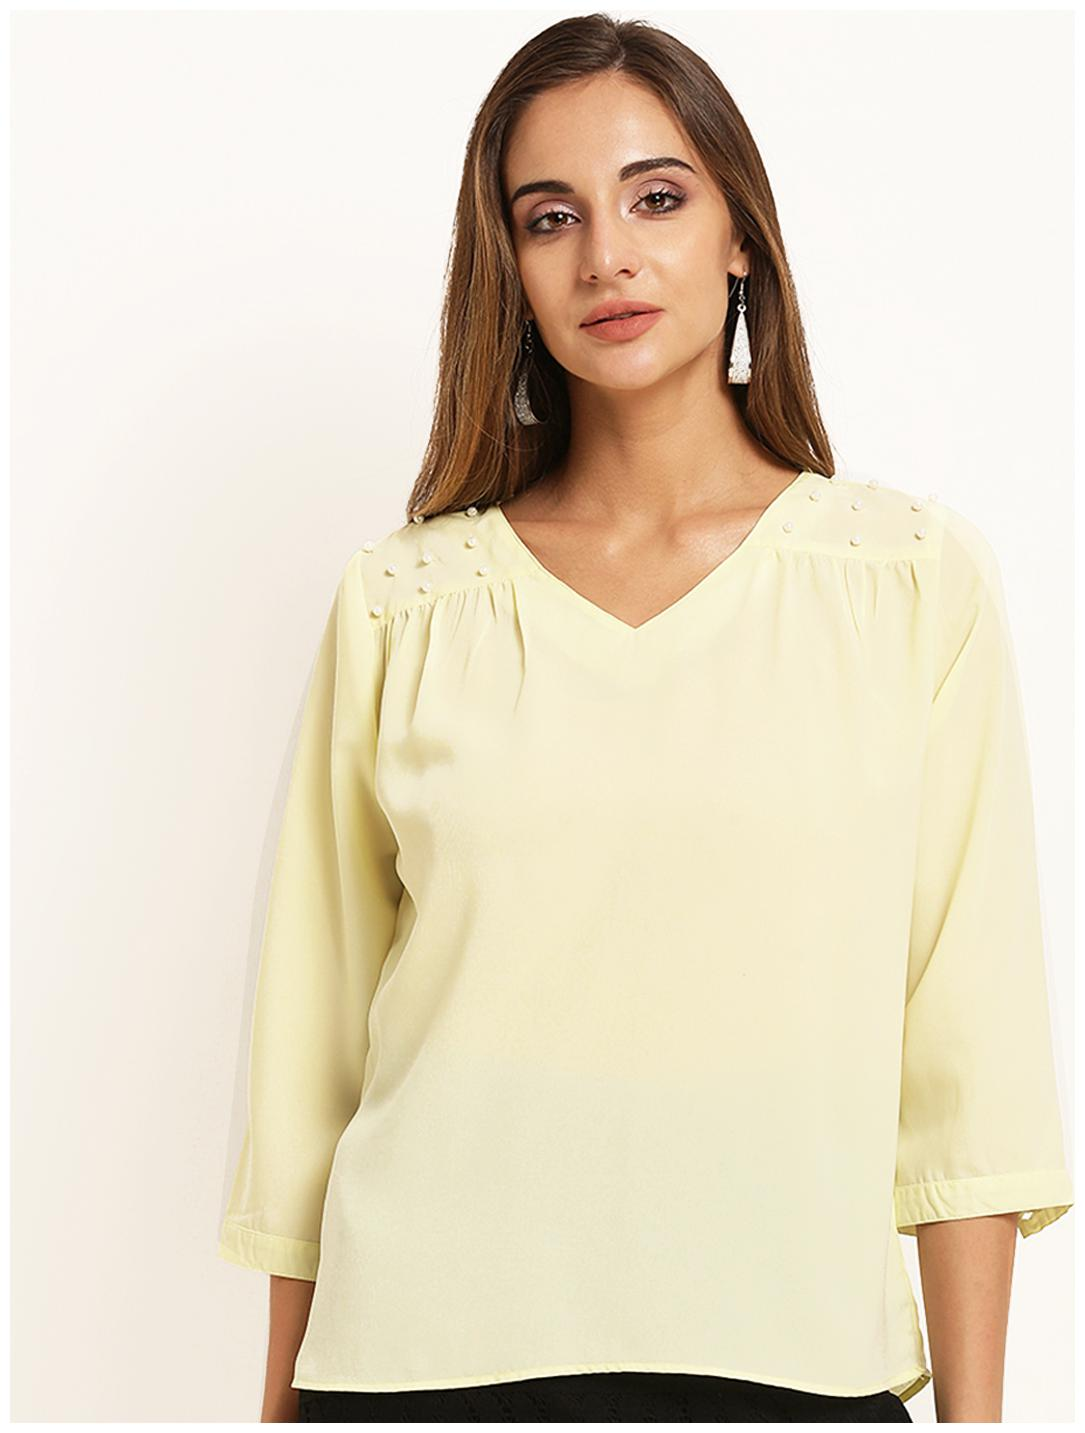 https://assetscdn1.paytm.com/images/catalog/product/A/AP/APPRARE-WOMEN-YEPIC199876110F5BE/1562936205060_0..jpg